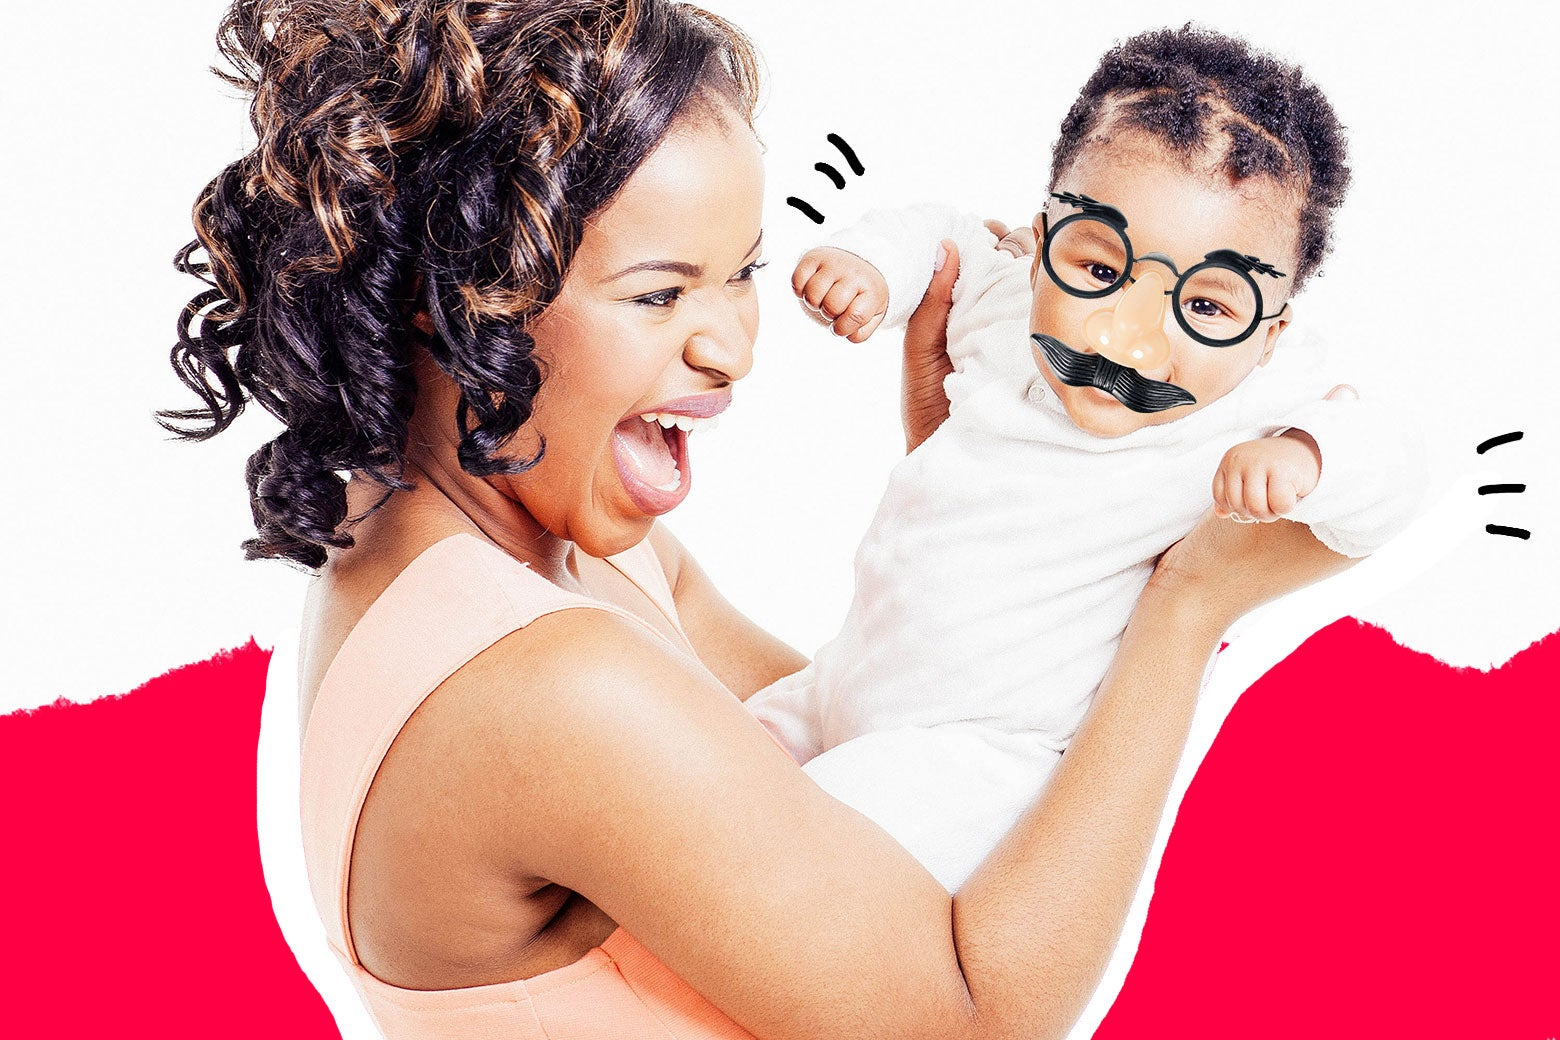 Woman caring for an infant. Infant is wearing silly glasses and laughing.